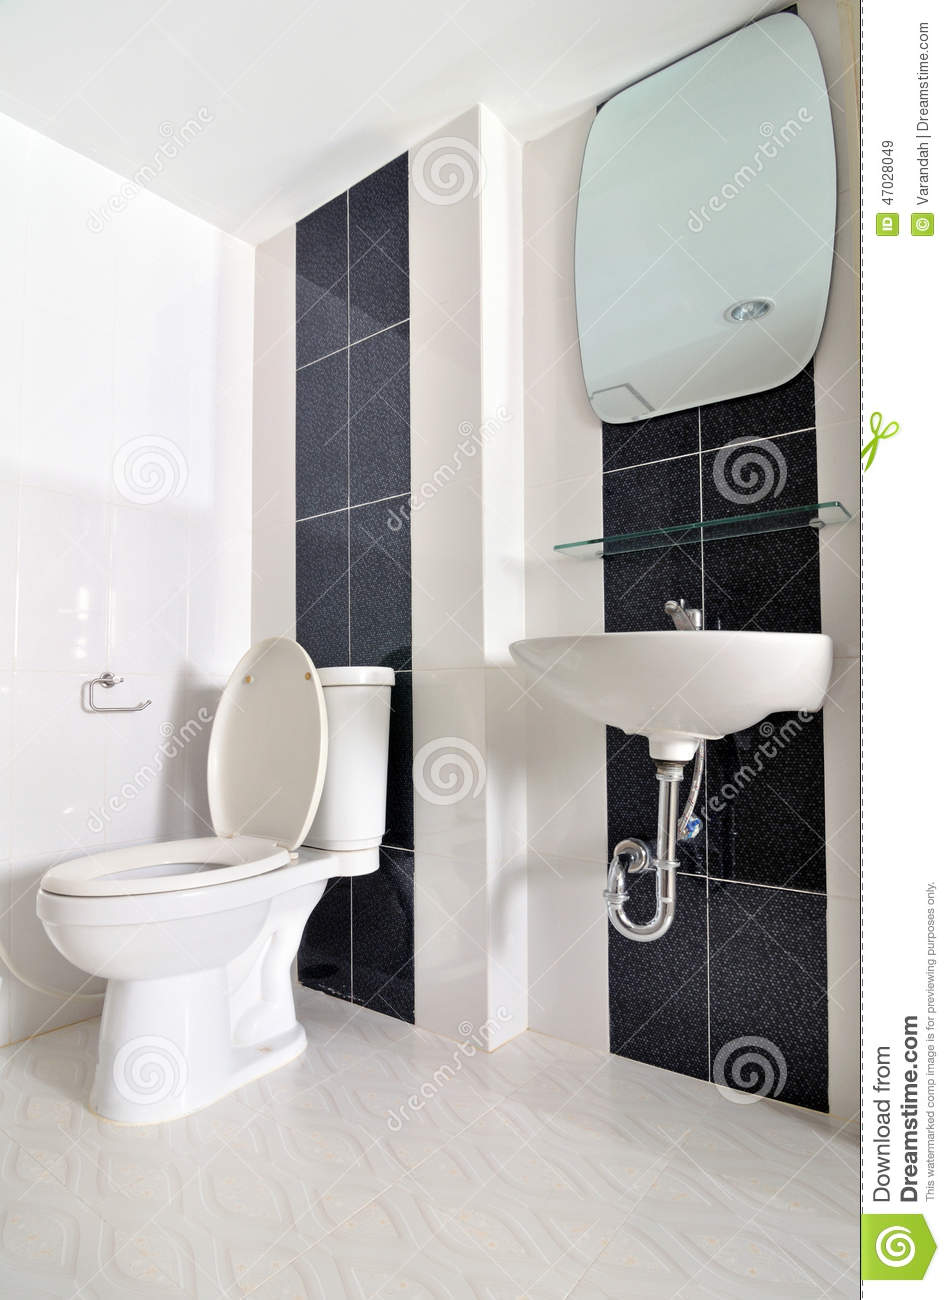 Small Simple Bathroom With Sink And Toilet Stock Photo